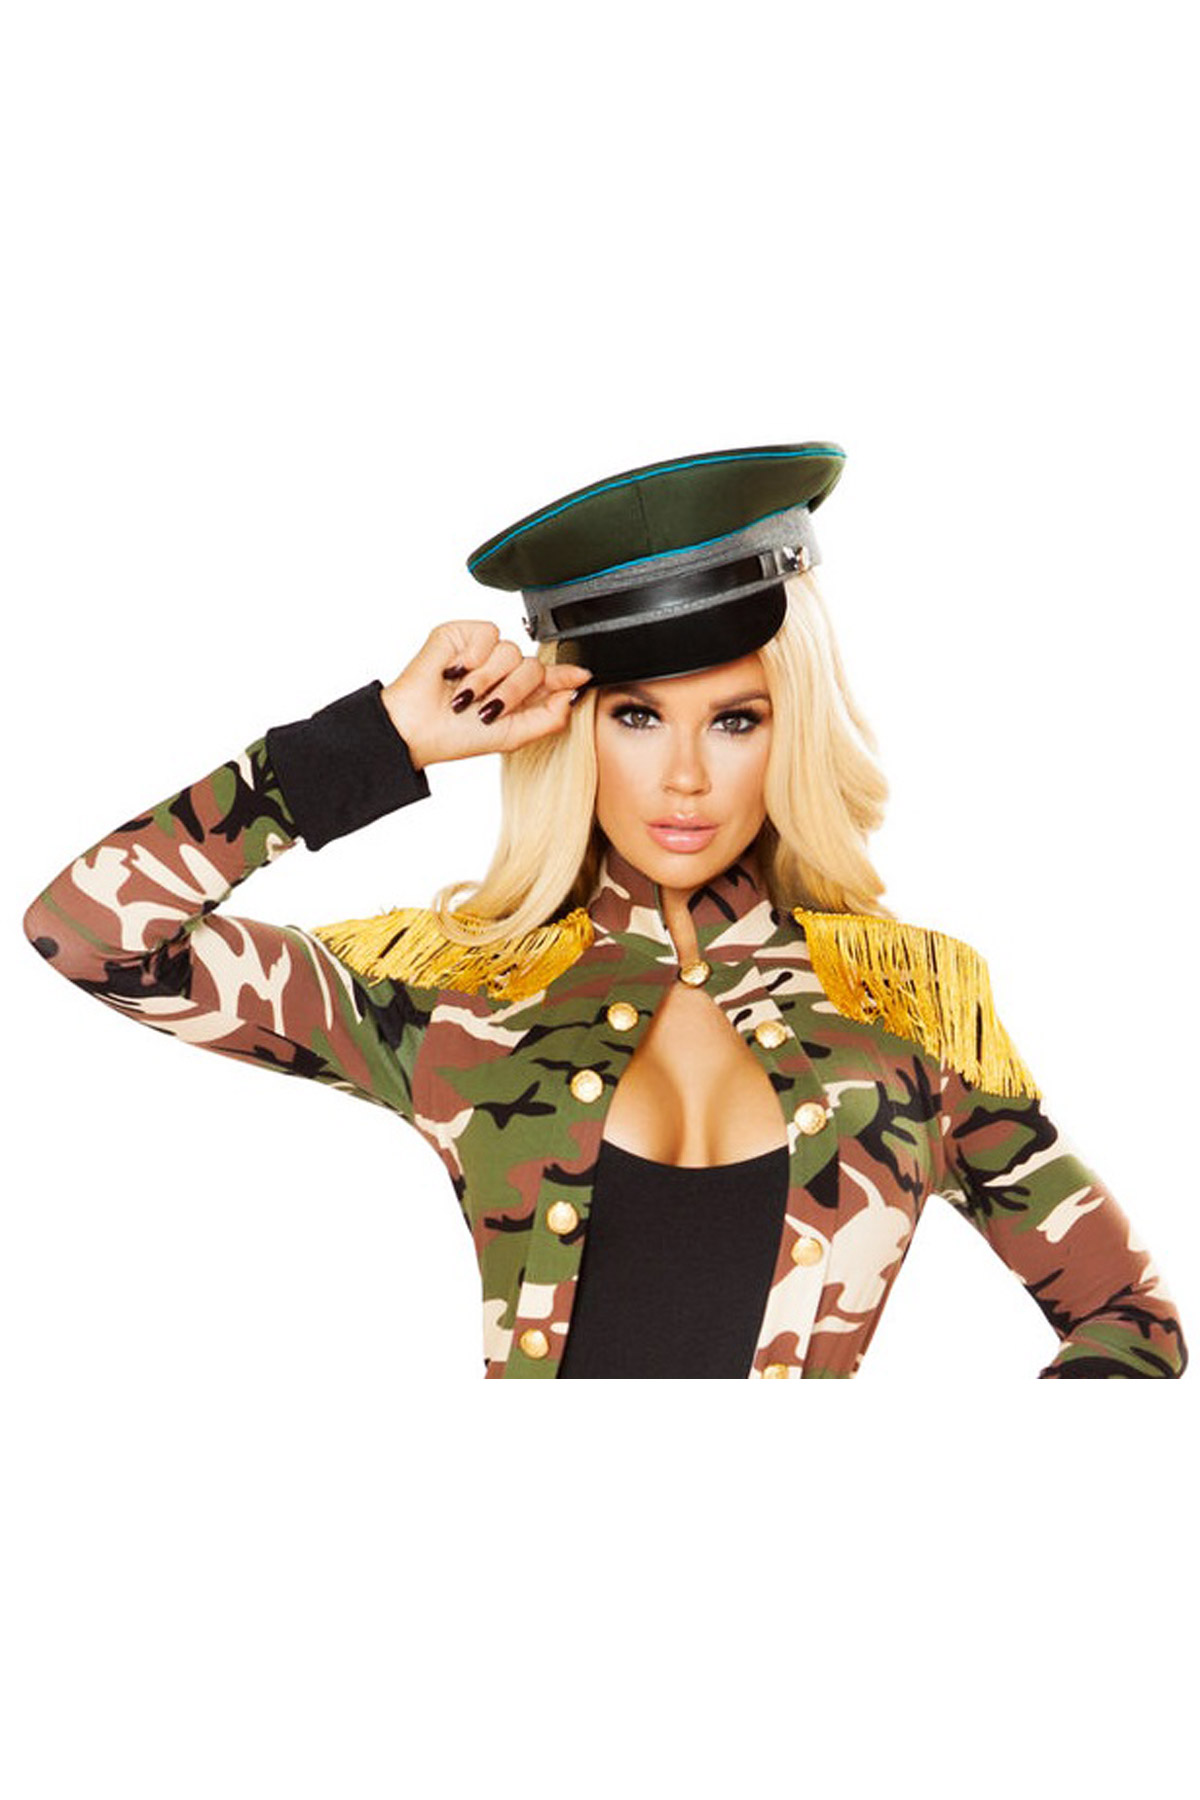 2c2afd76 Details about Sexy Army Girl Sergeant Military Hat Halloween Costume  Accessory Adult Women